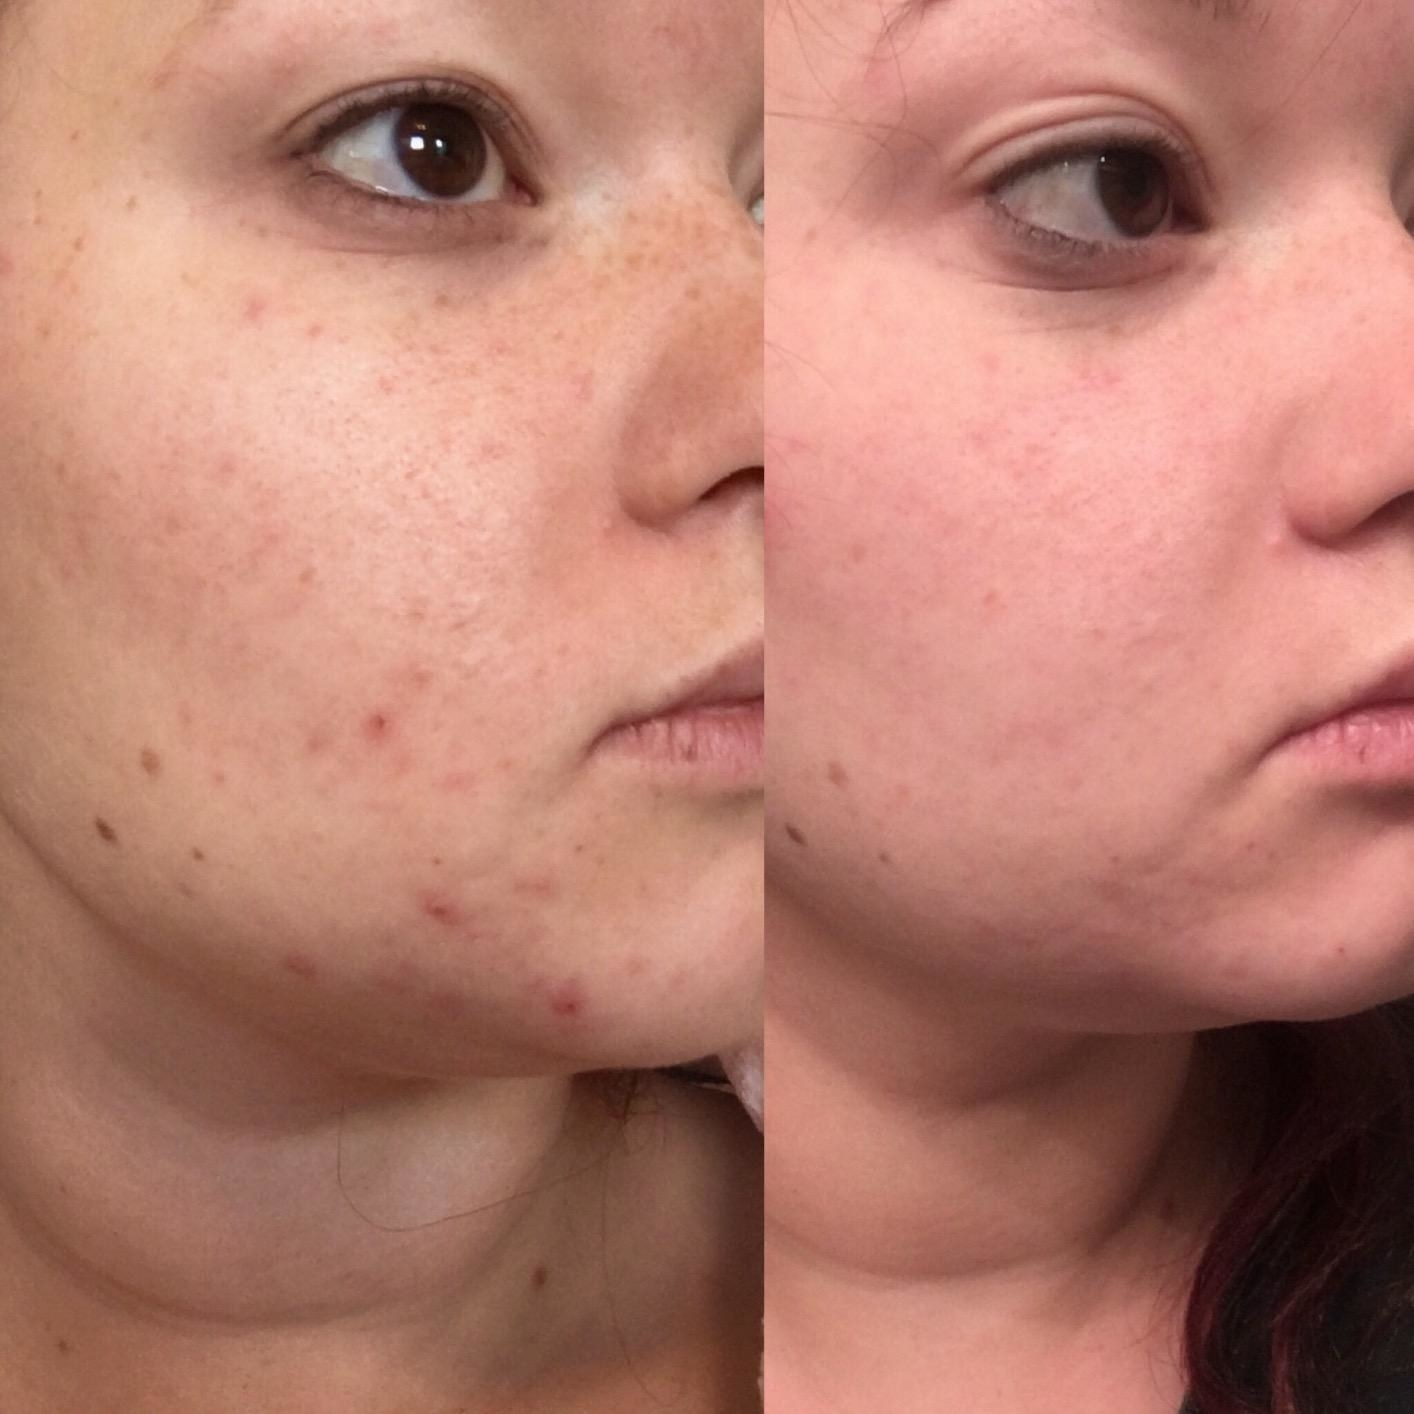 on the left reviewer with a few breakouts, on the right the same reviewer with no breakouts